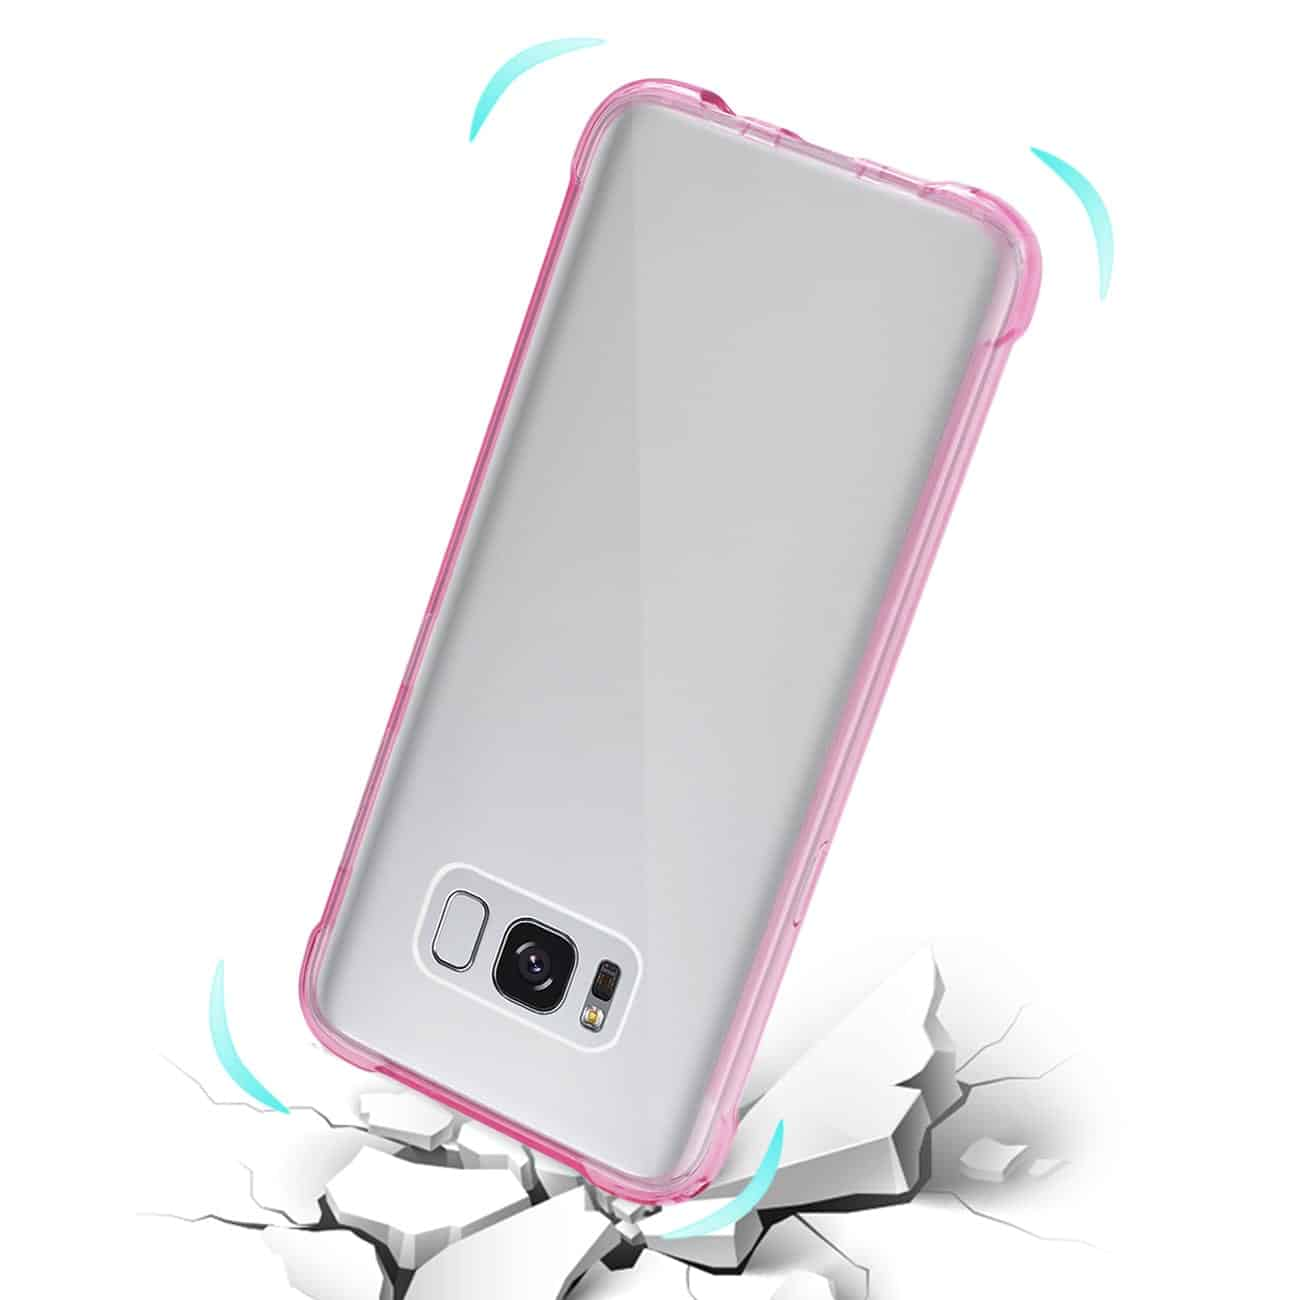 SAMSUNG GALAXY S8 CLEAR BUMPER CASE WITH AIR CUSHION PROTECTION IN CLEAR HOT PINK